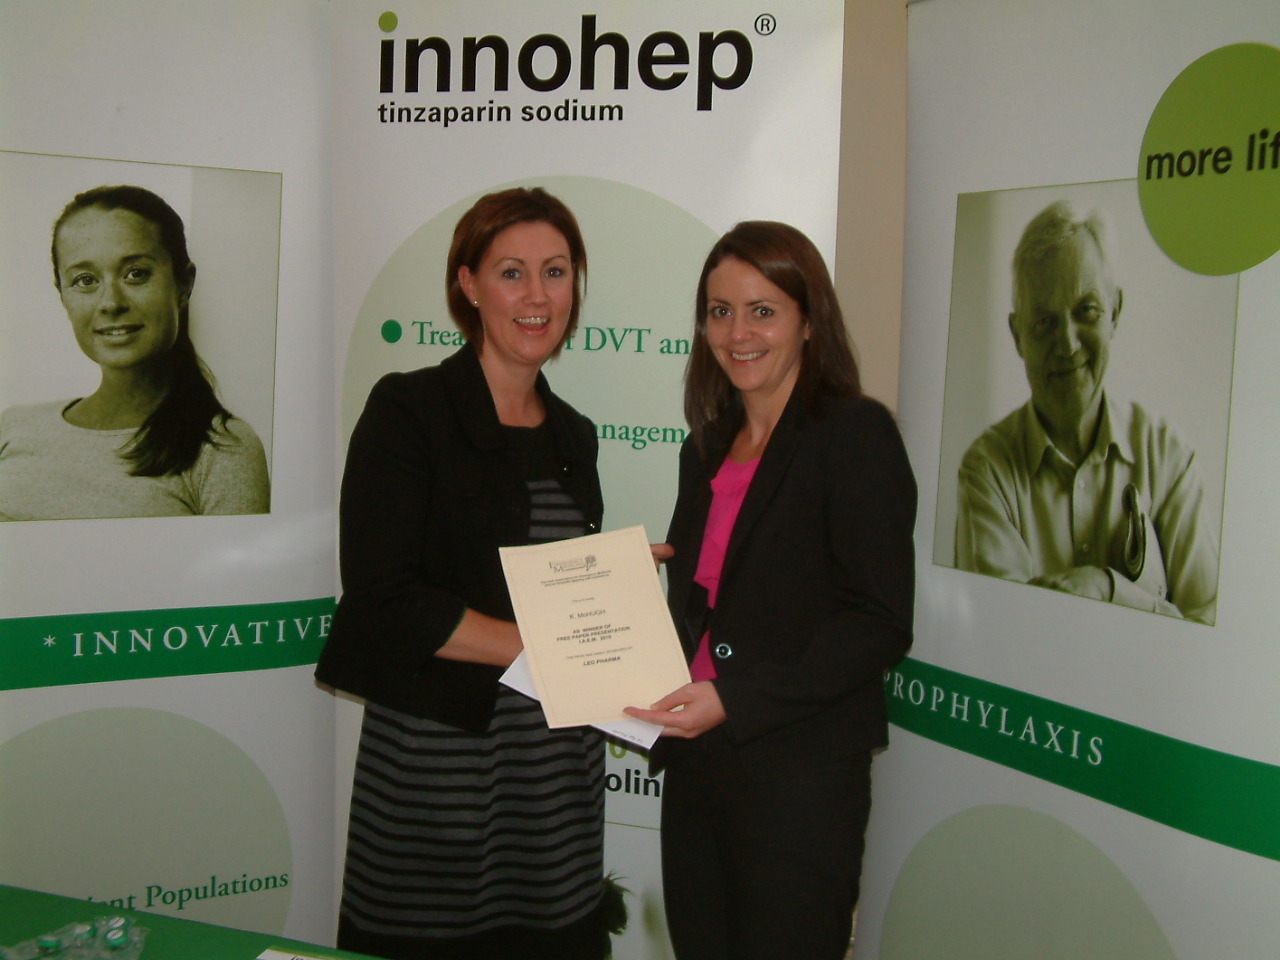 Dr. Karen McHugh (SpR in EM), on the right, receiving her award from Judy Fleming of Leo Pharma